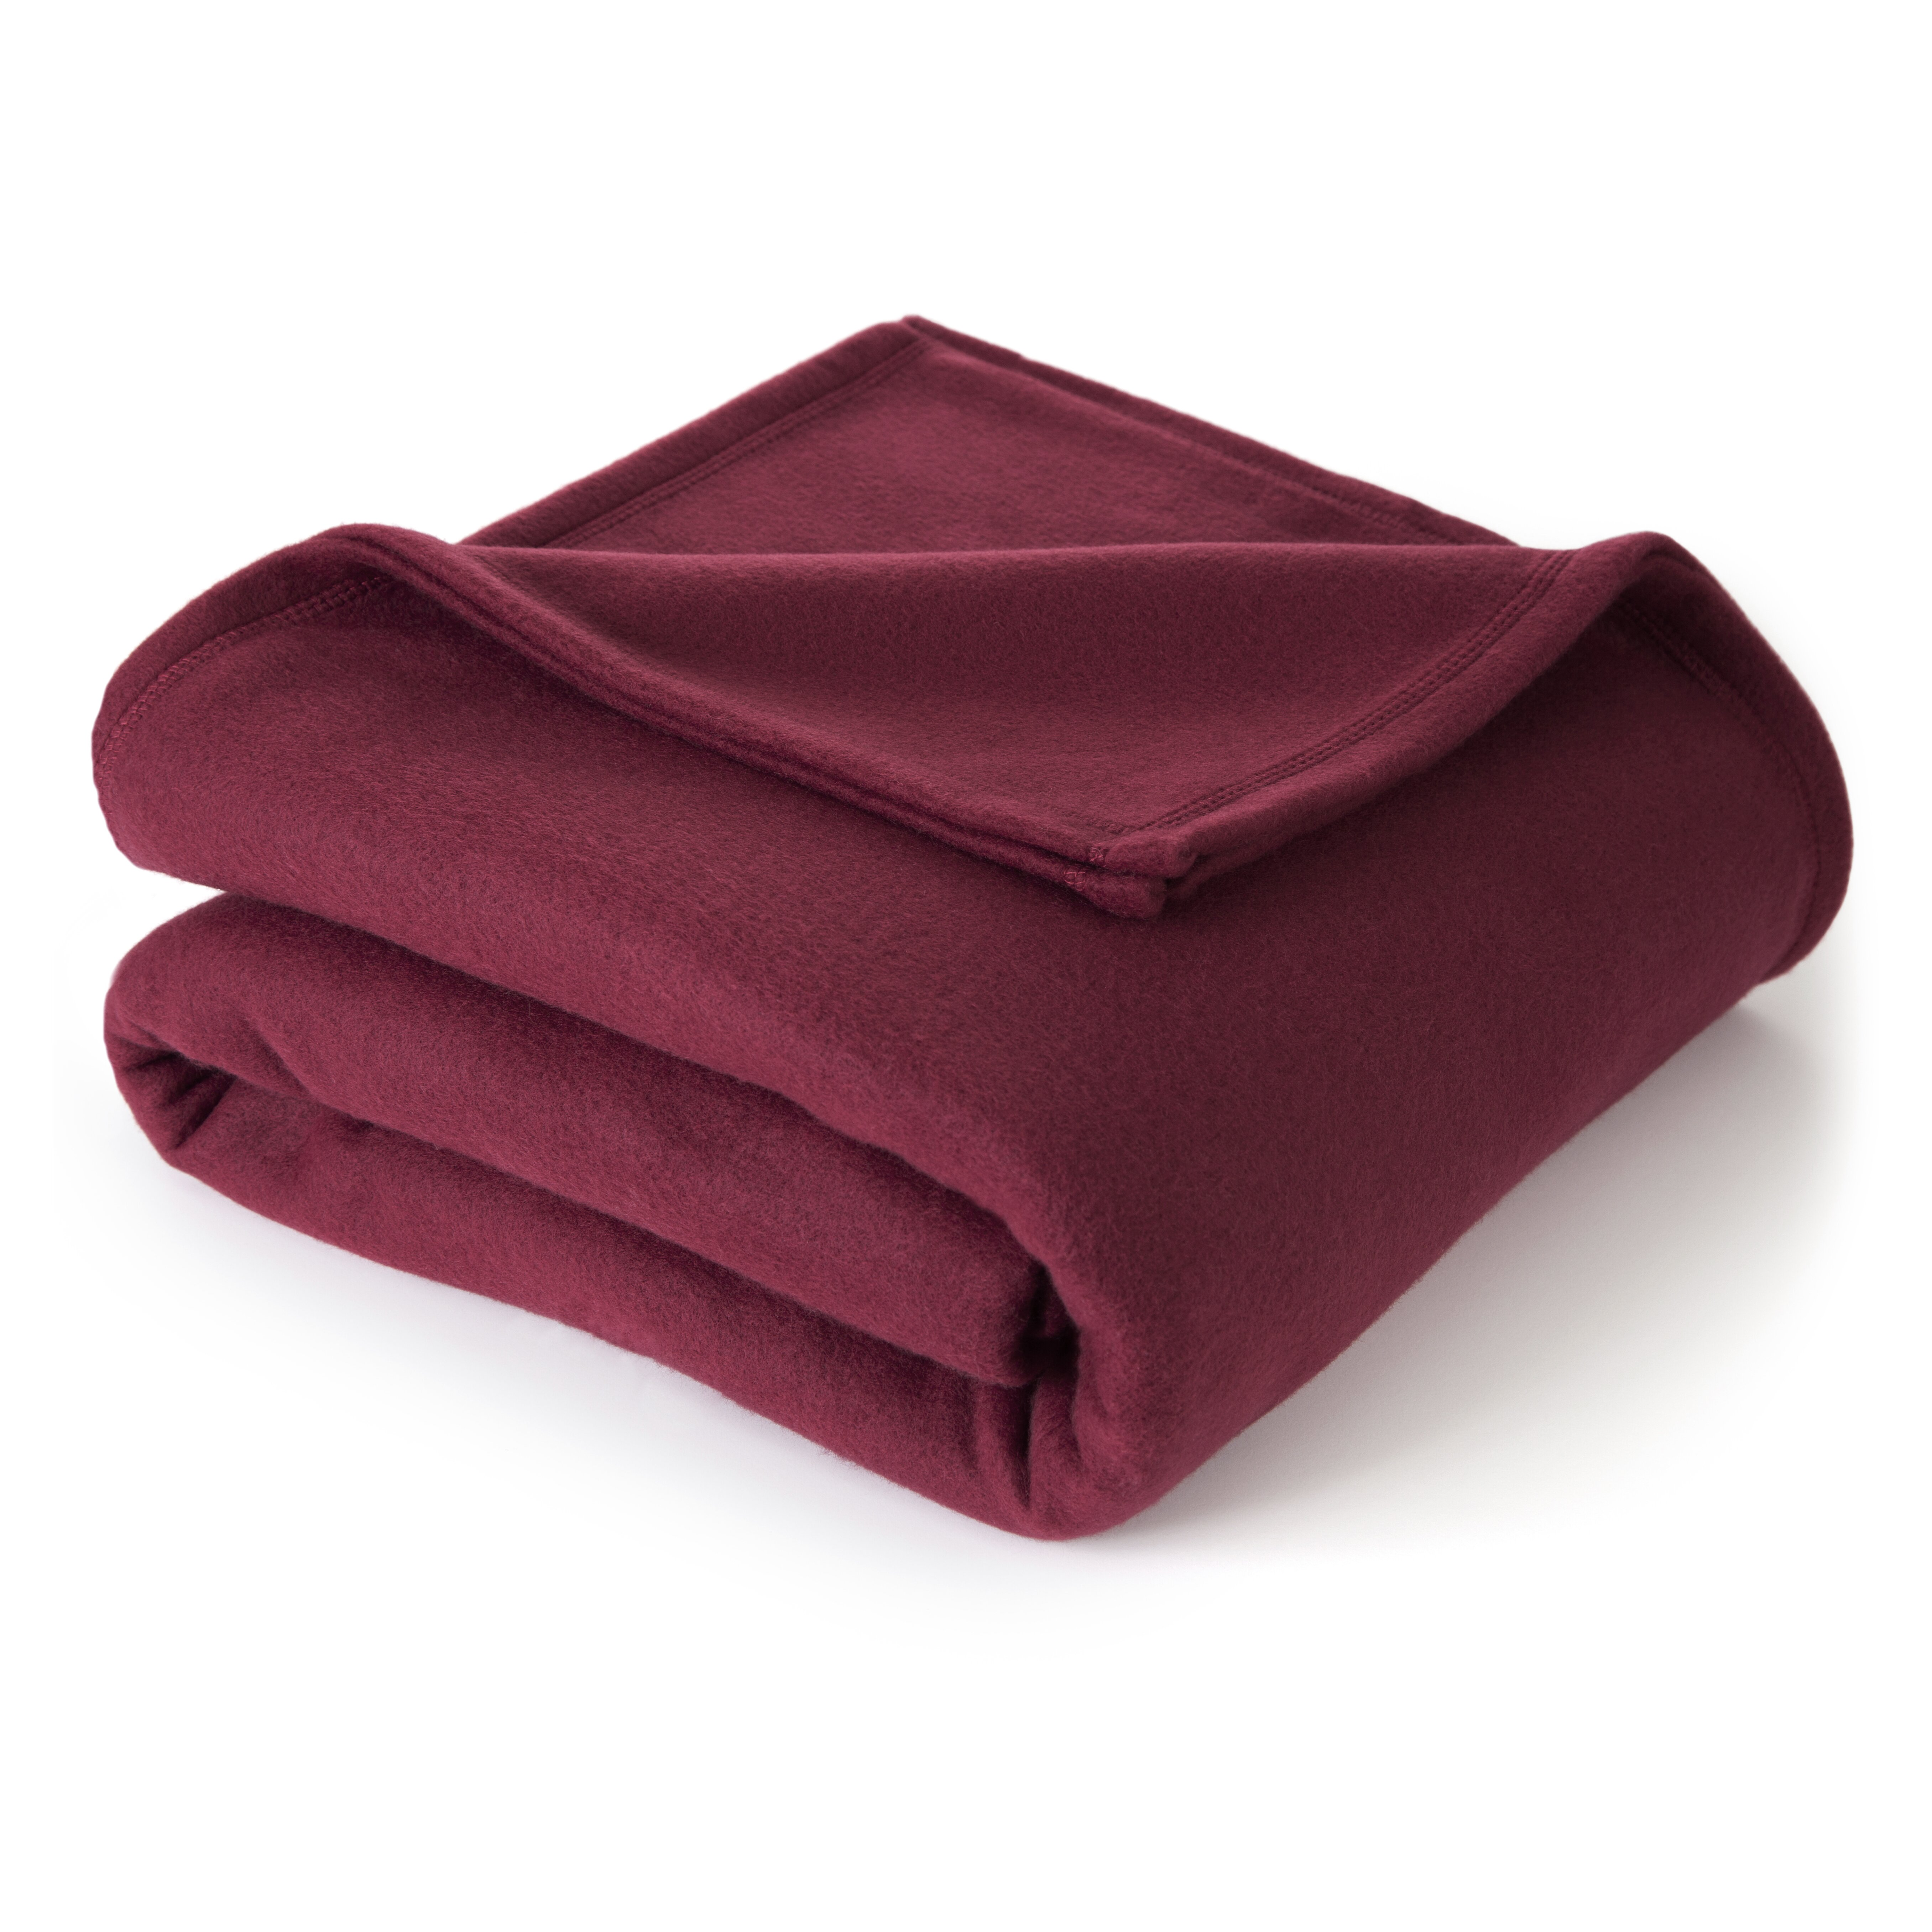 Vellux martex super soft blanket reviews wayfair for Soft blankets and throws